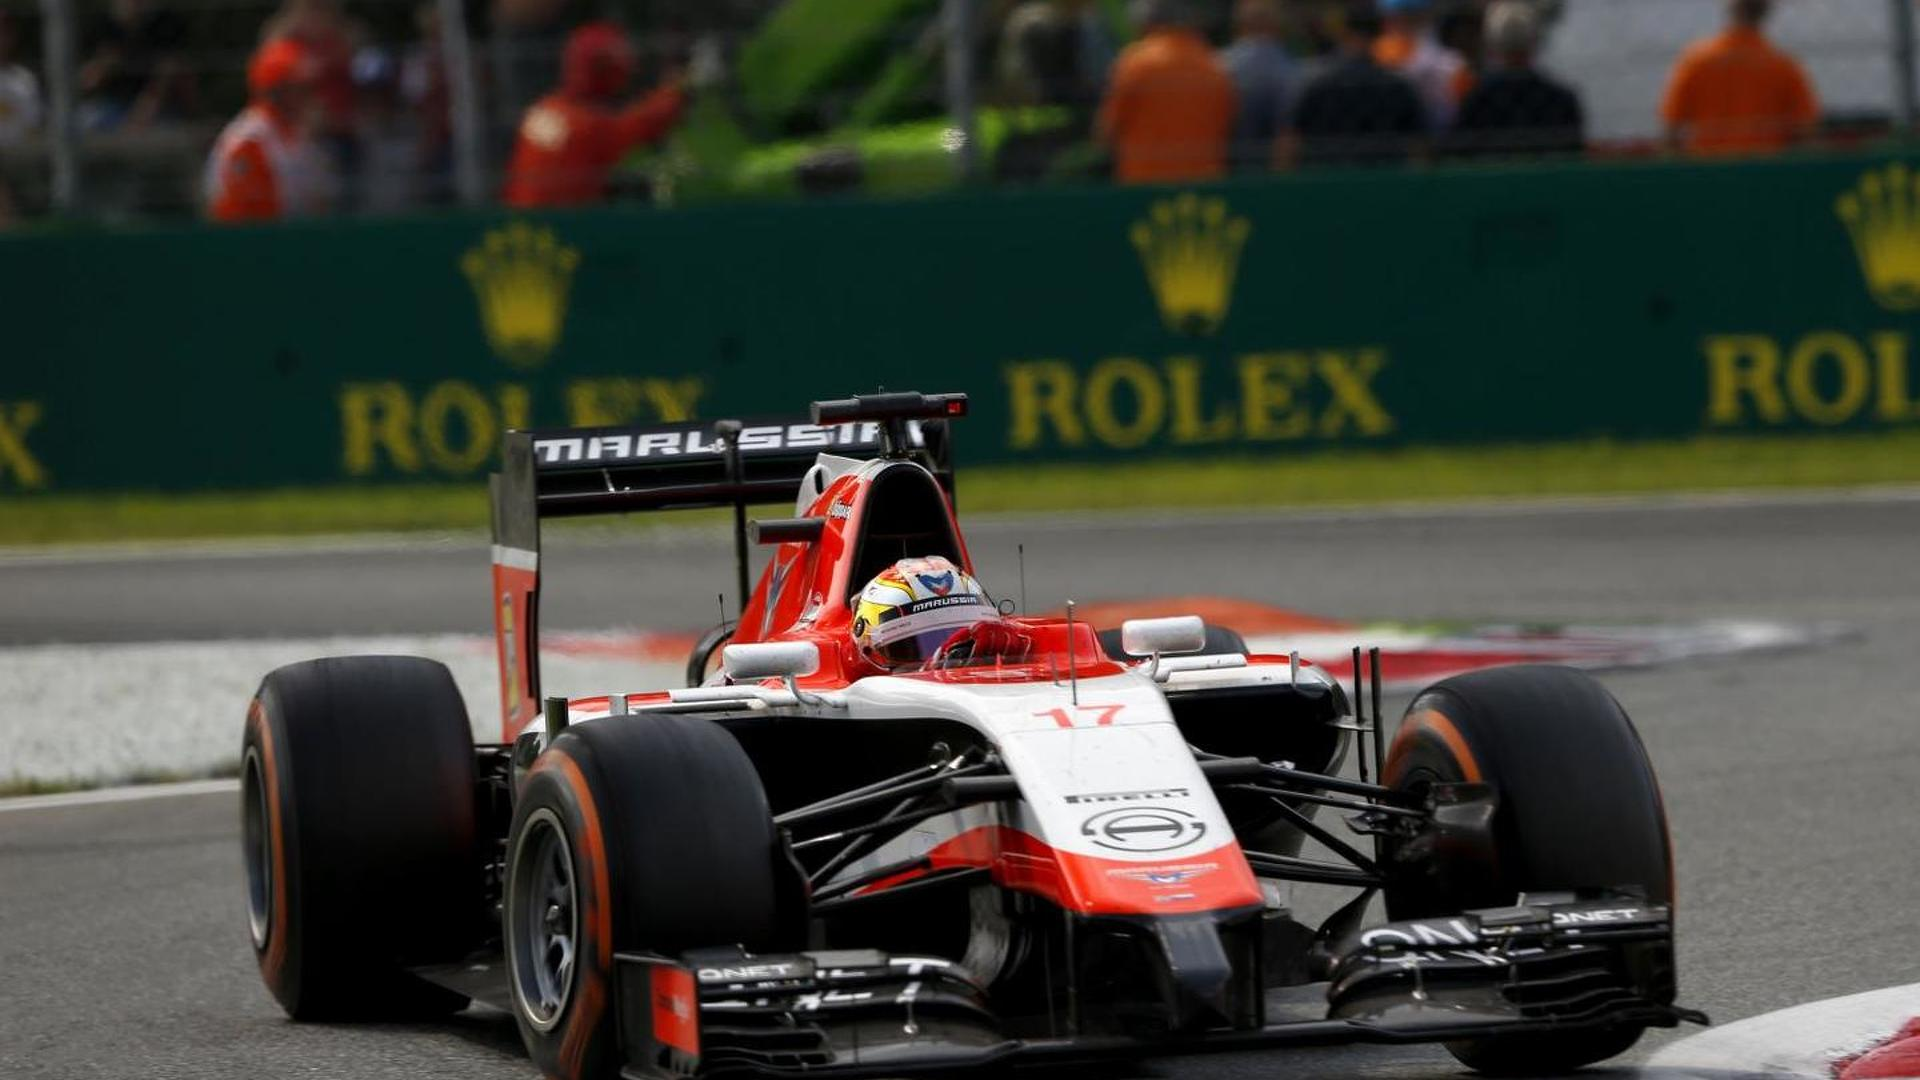 Billionaire now looking to buy Marussia - report